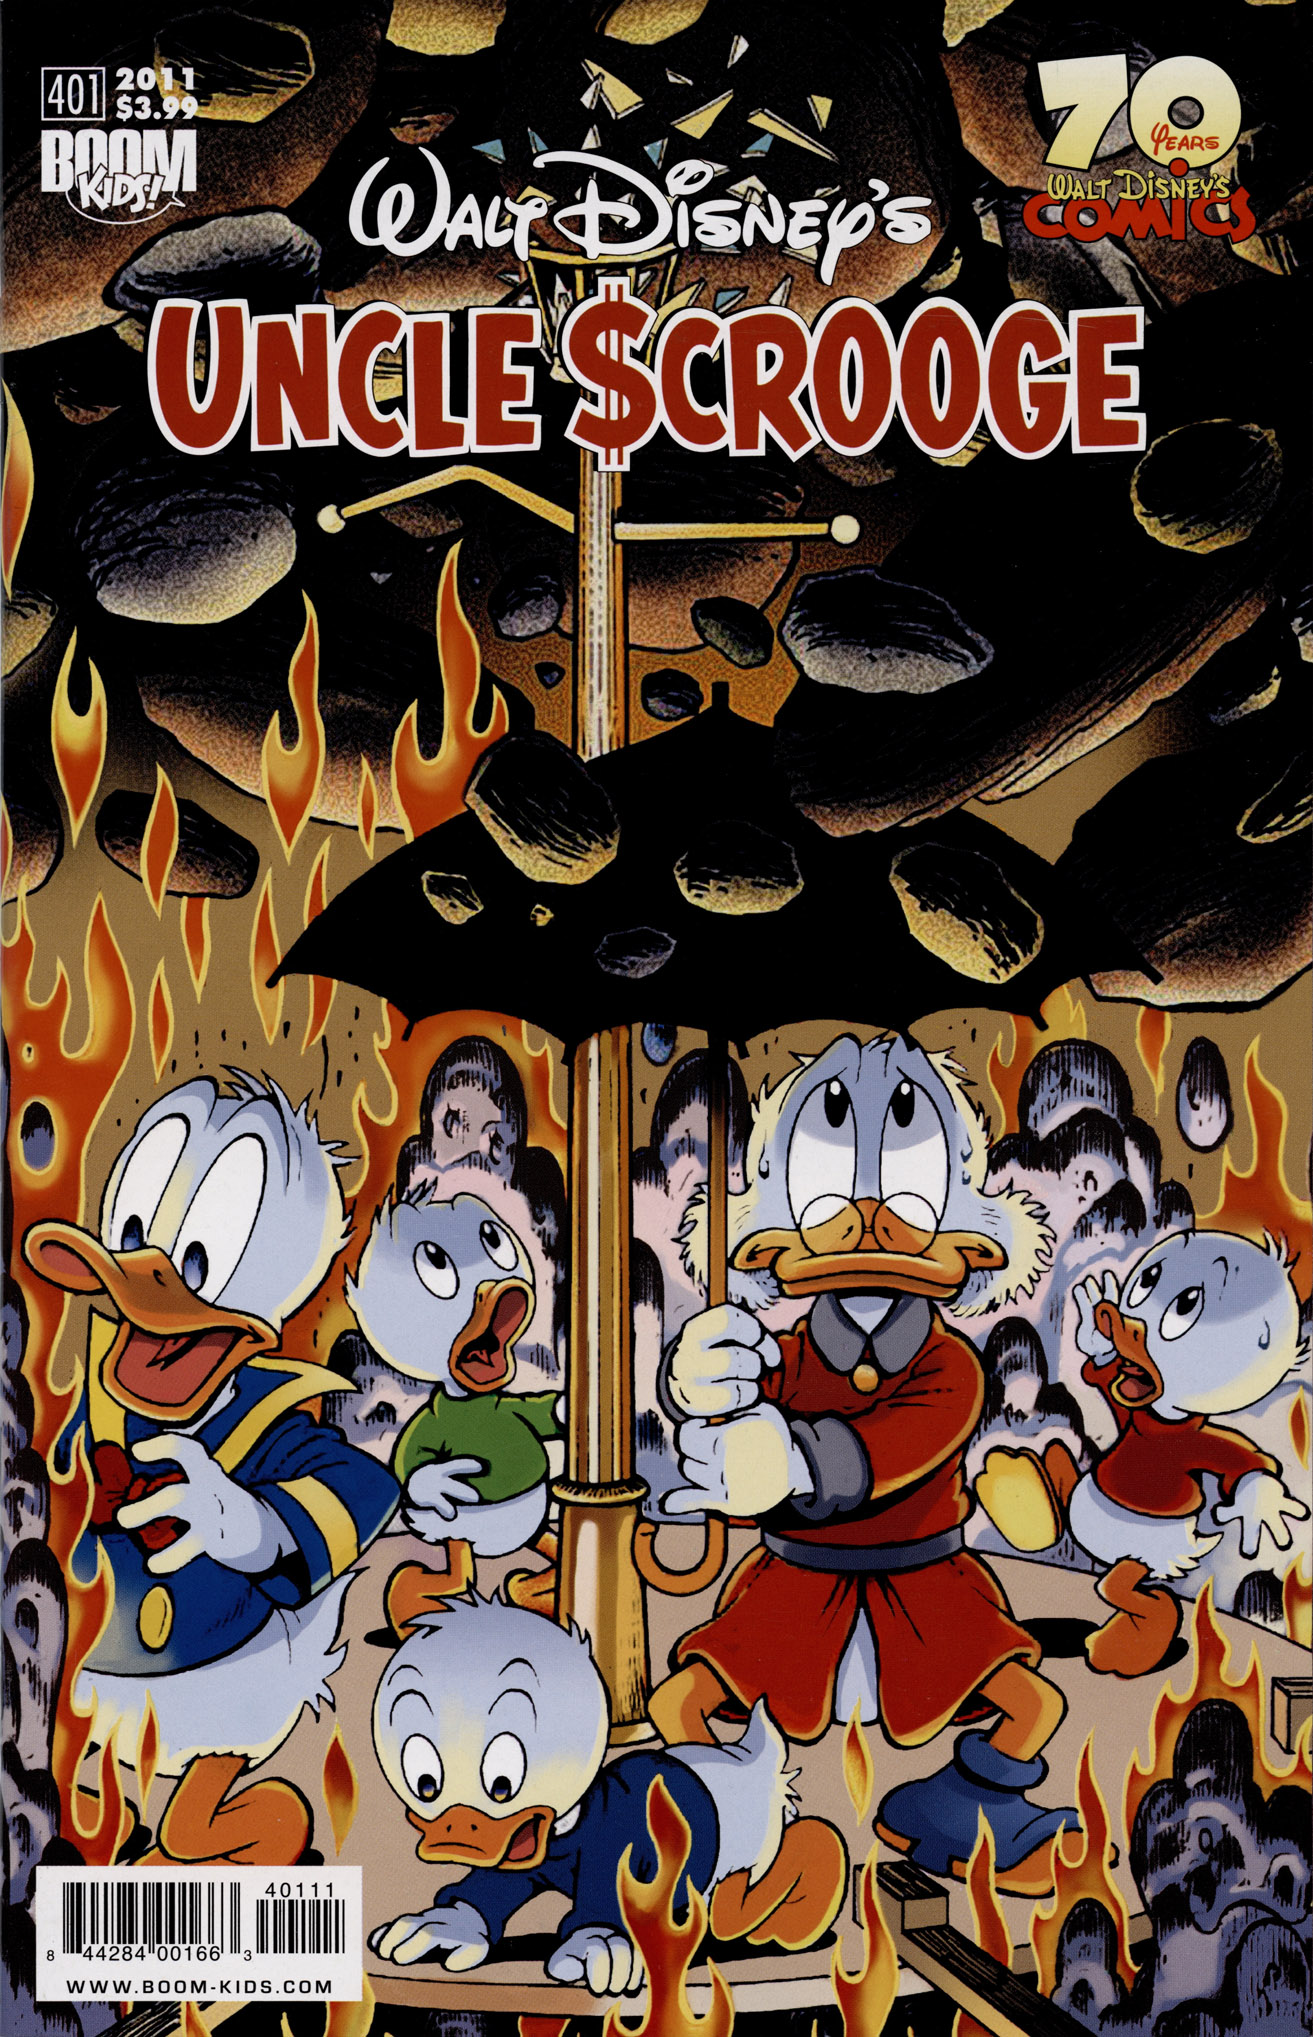 Read online Uncle Scrooge (1953) comic -  Issue #401 - 1